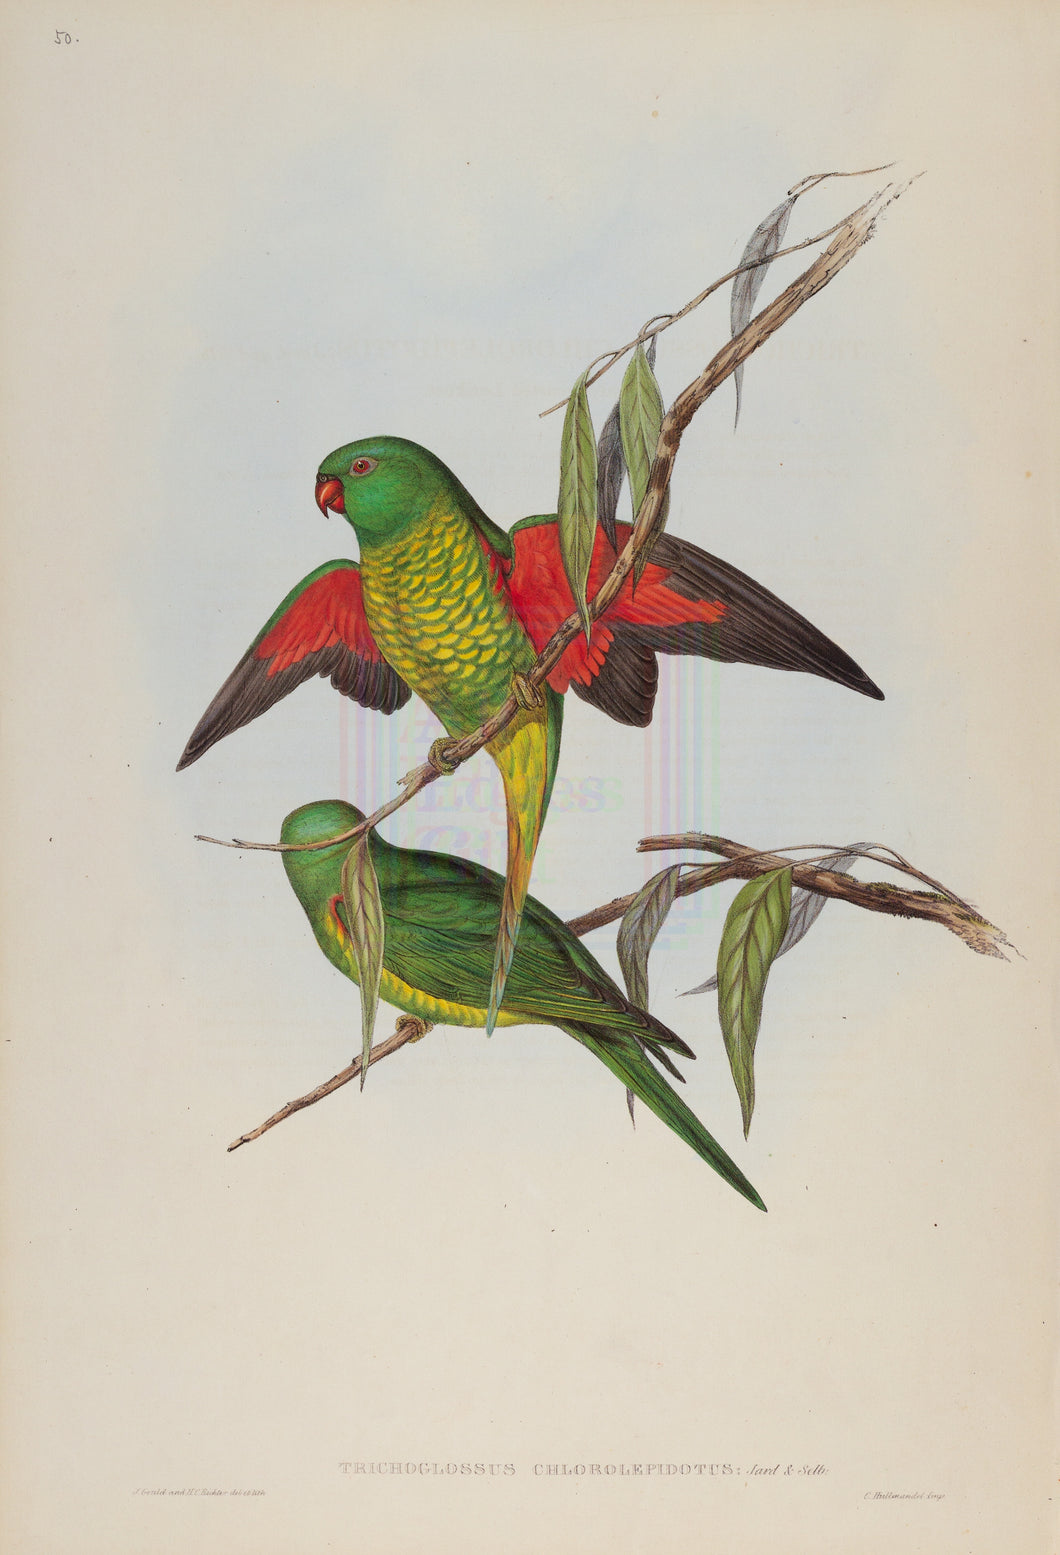 Scaly-Breasted Lorikeet